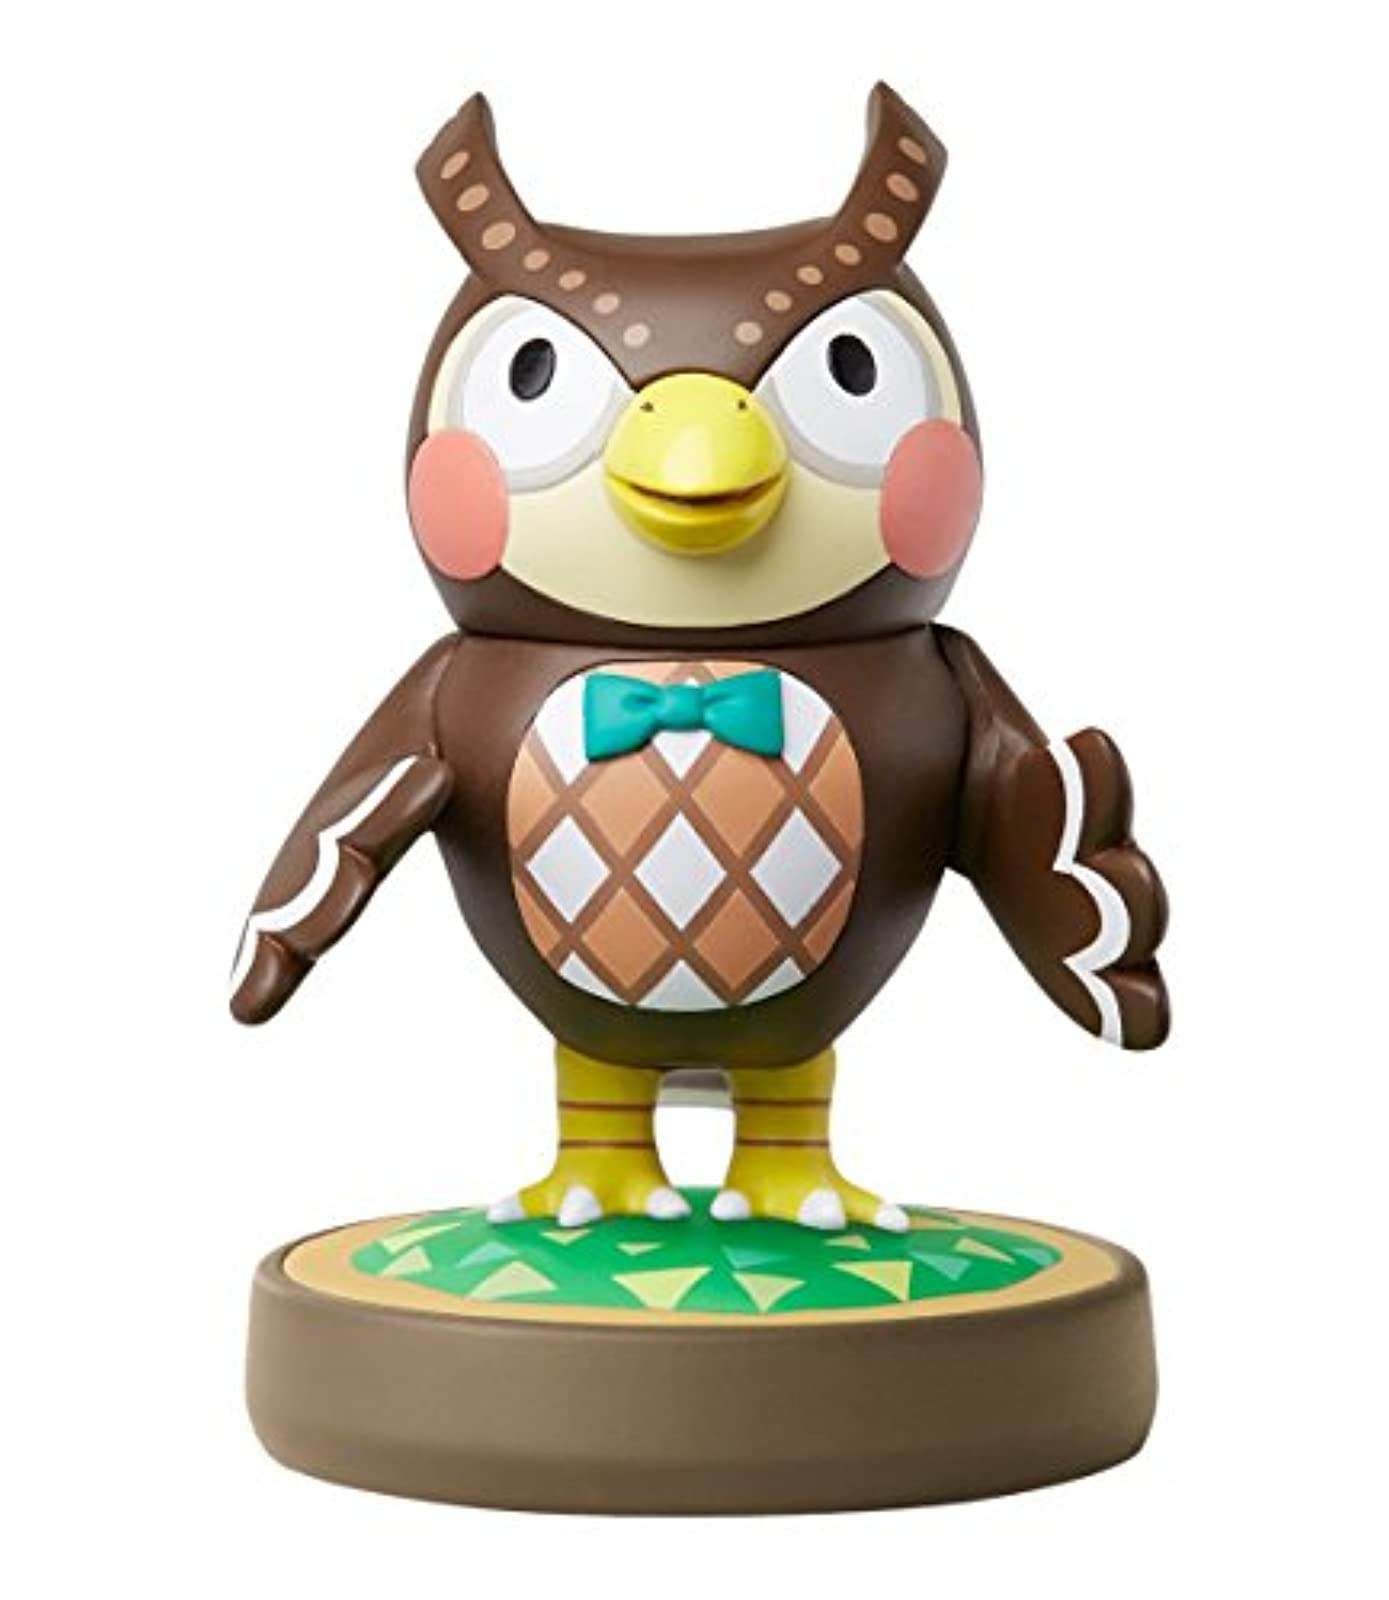 Blathers Amiibo Animal Crossing Series For Nintendo Switch Figure